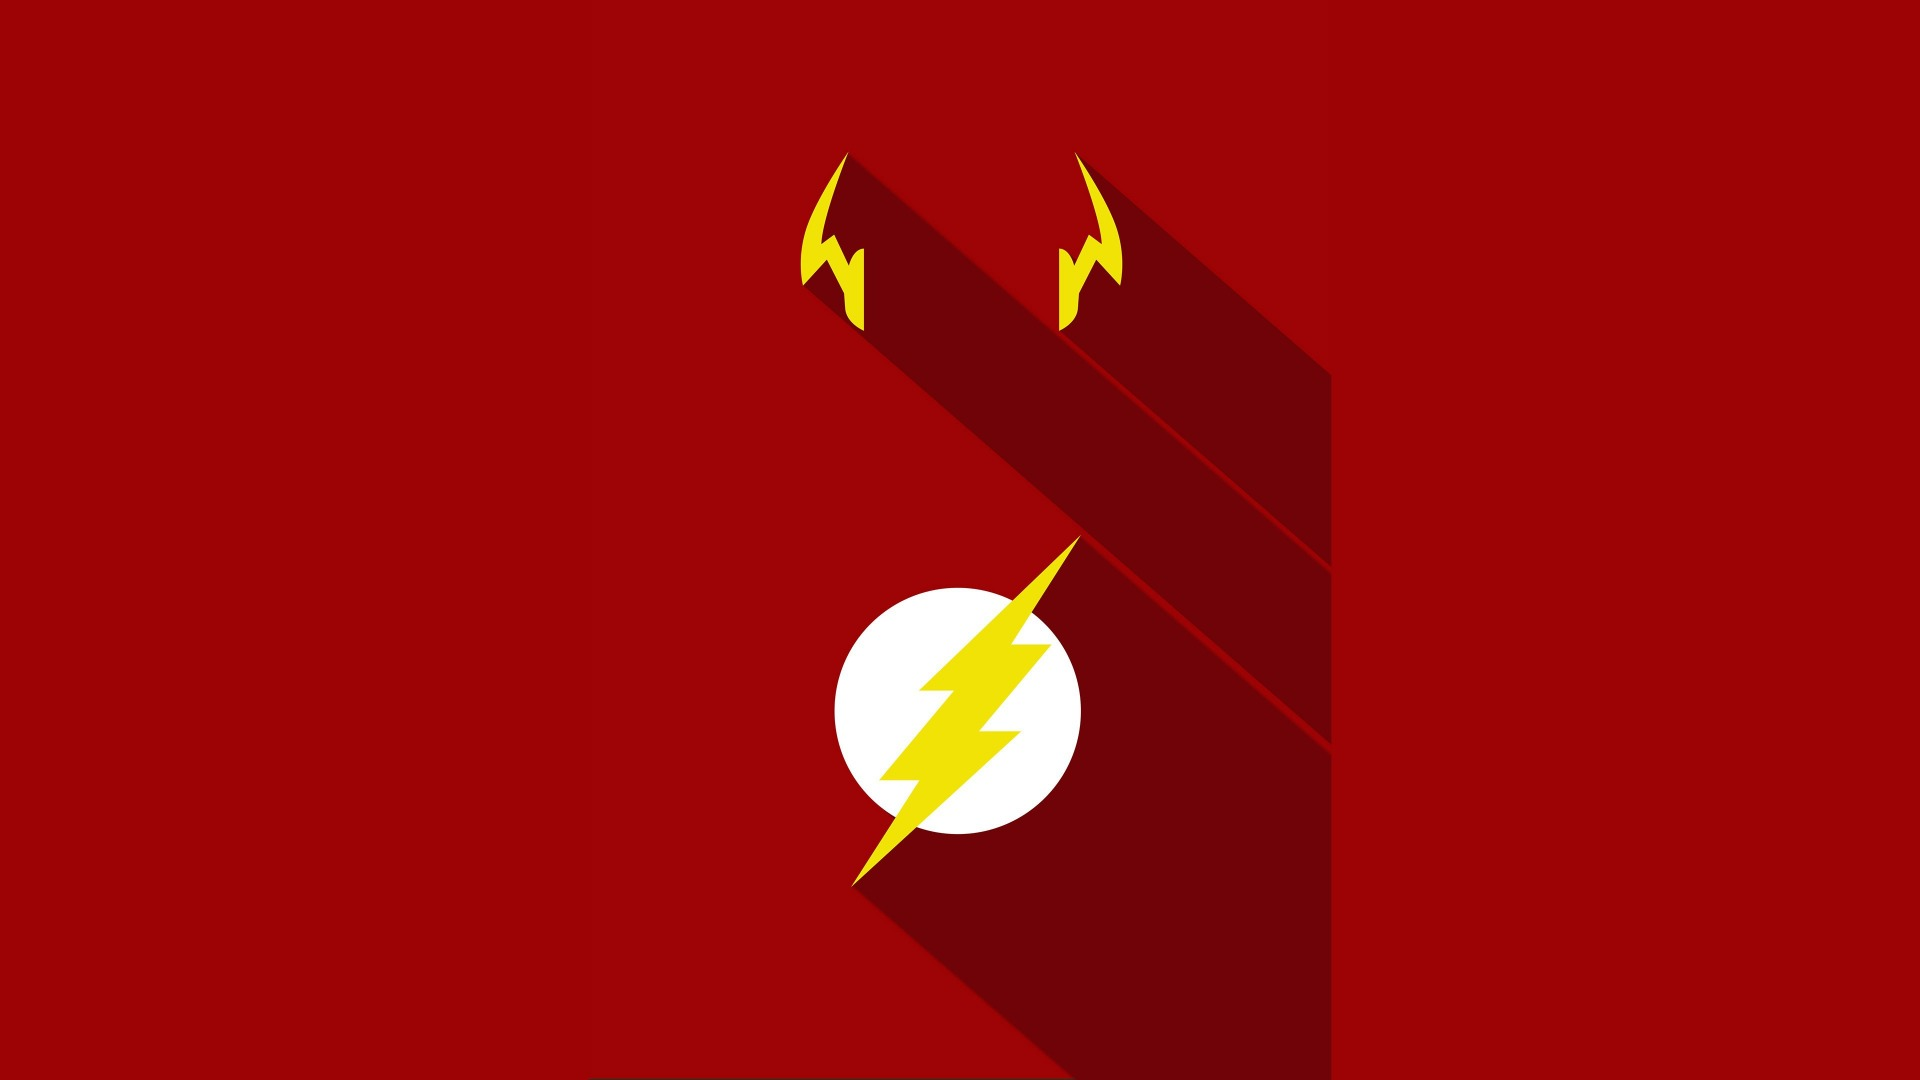 Barry Allen, Flash, Wally West, red